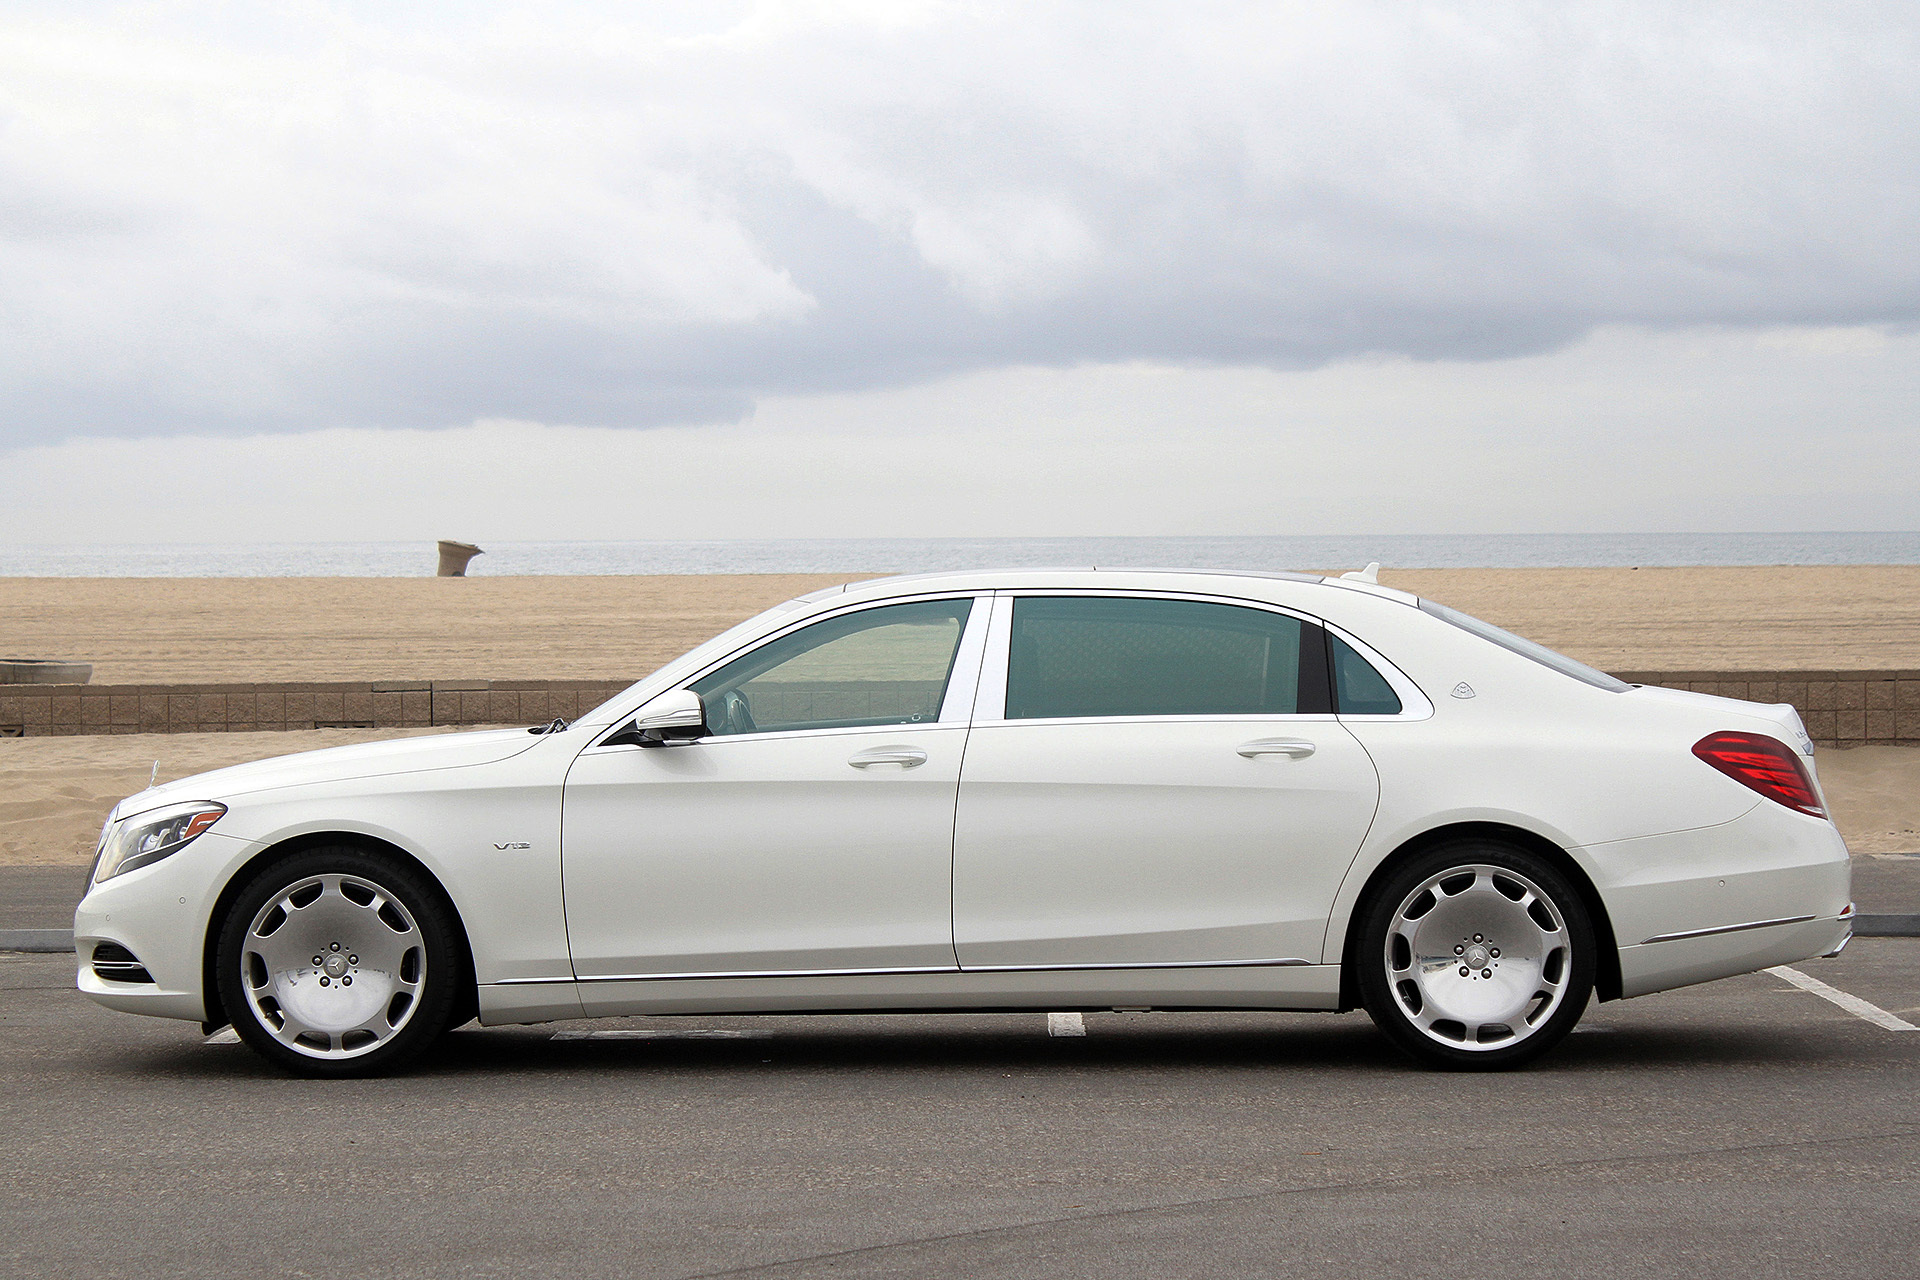 2016 Mercedes Maybach S600 Opulence In Motion 5